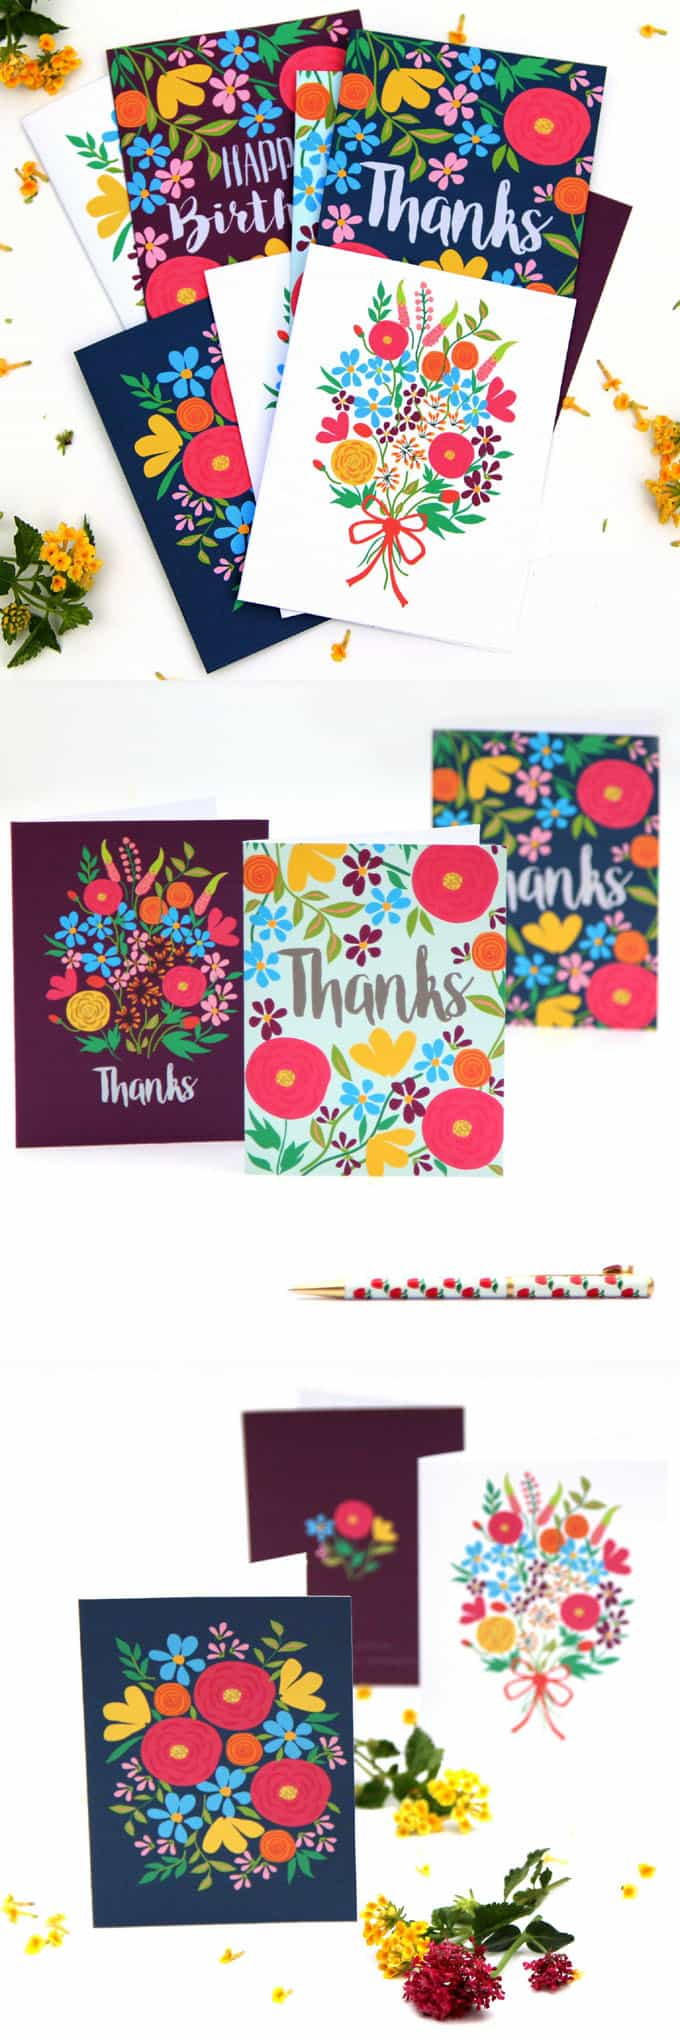 Free printable flower greeting cards a piece of rainbow free printable greeting cards apieceofrainbow 3 kristyandbryce Images